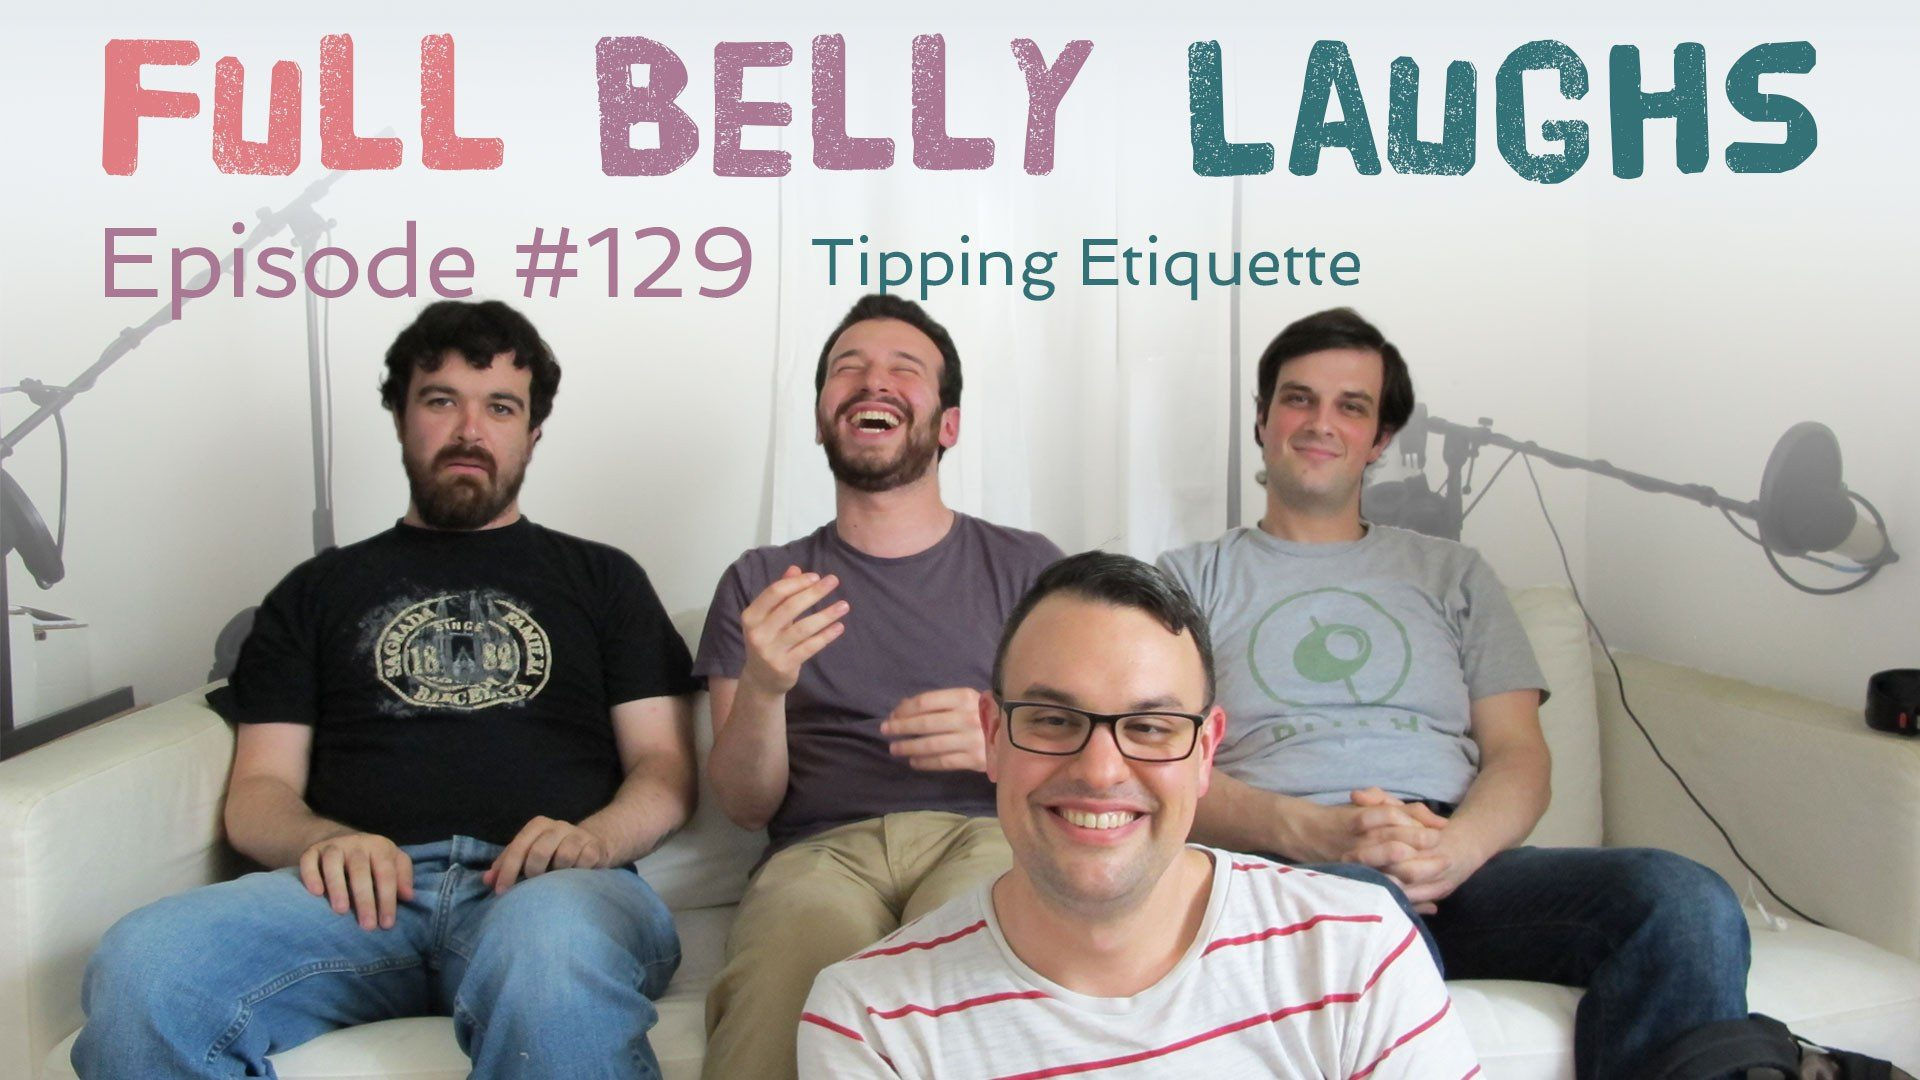 full belly laughs podcast episode 129 tipping etiquette audio artwork